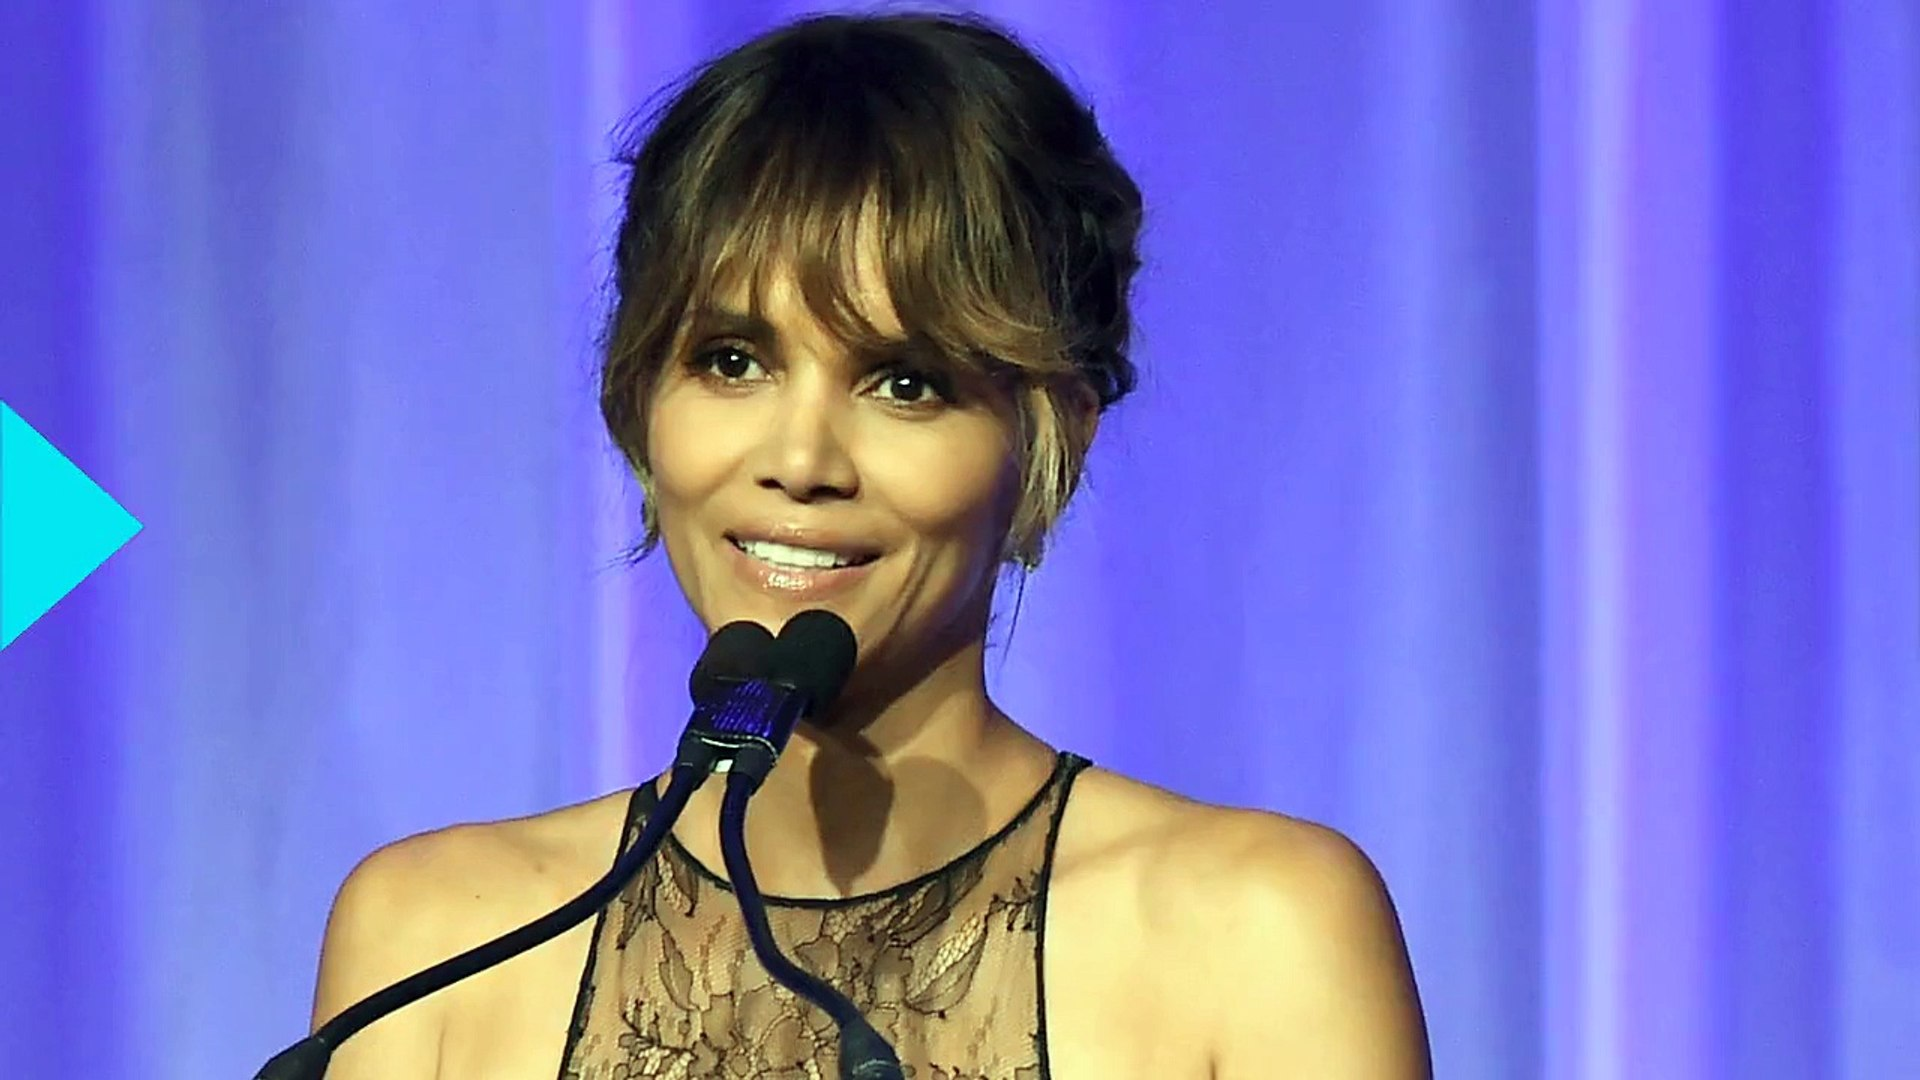 Halle Berry Shows Off Her Insane Body in a Sheer Top